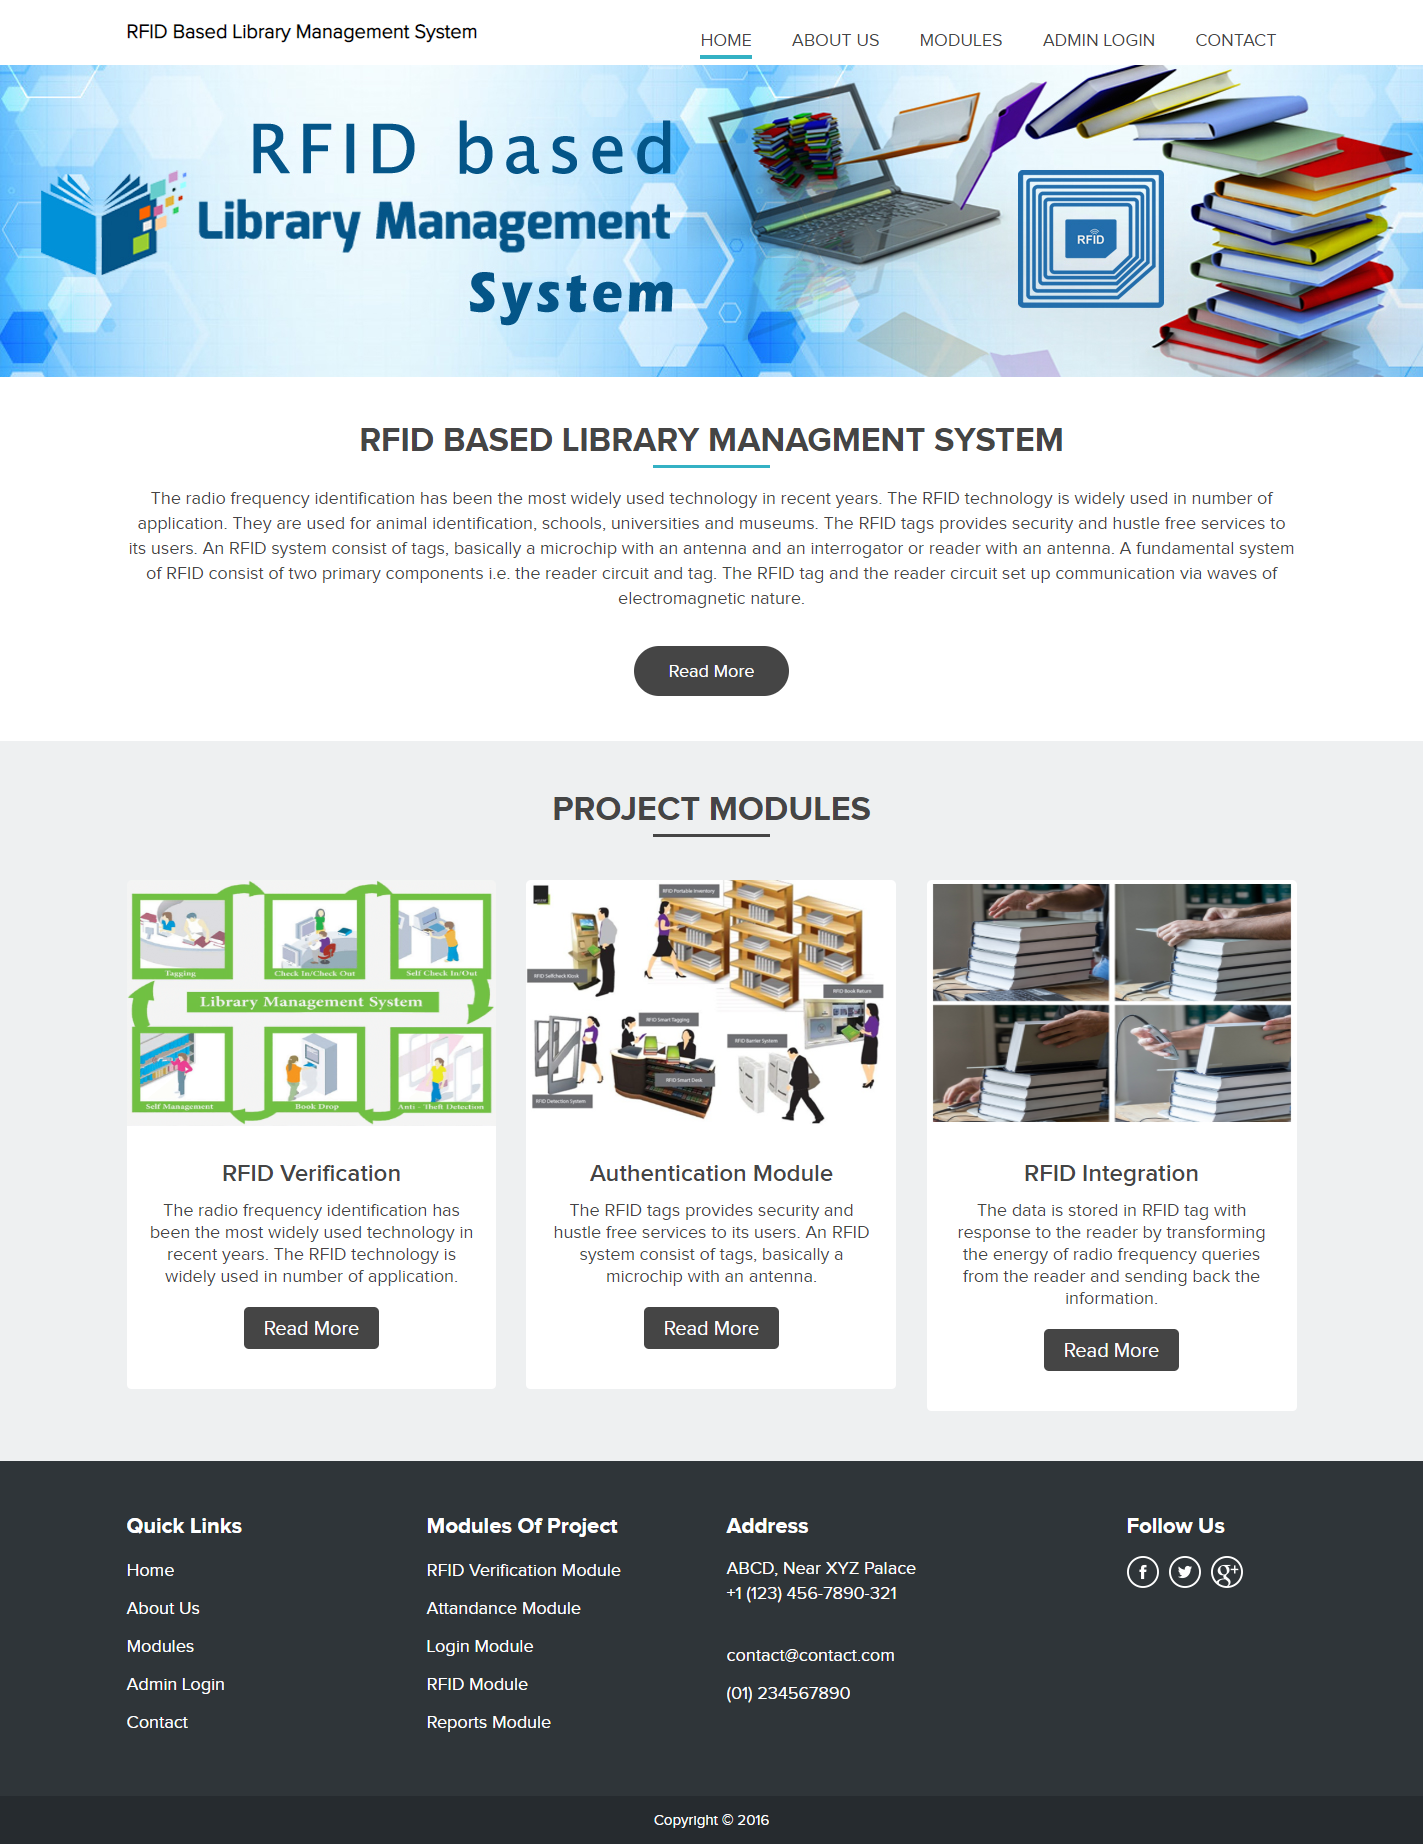 RFID Based Library Management System